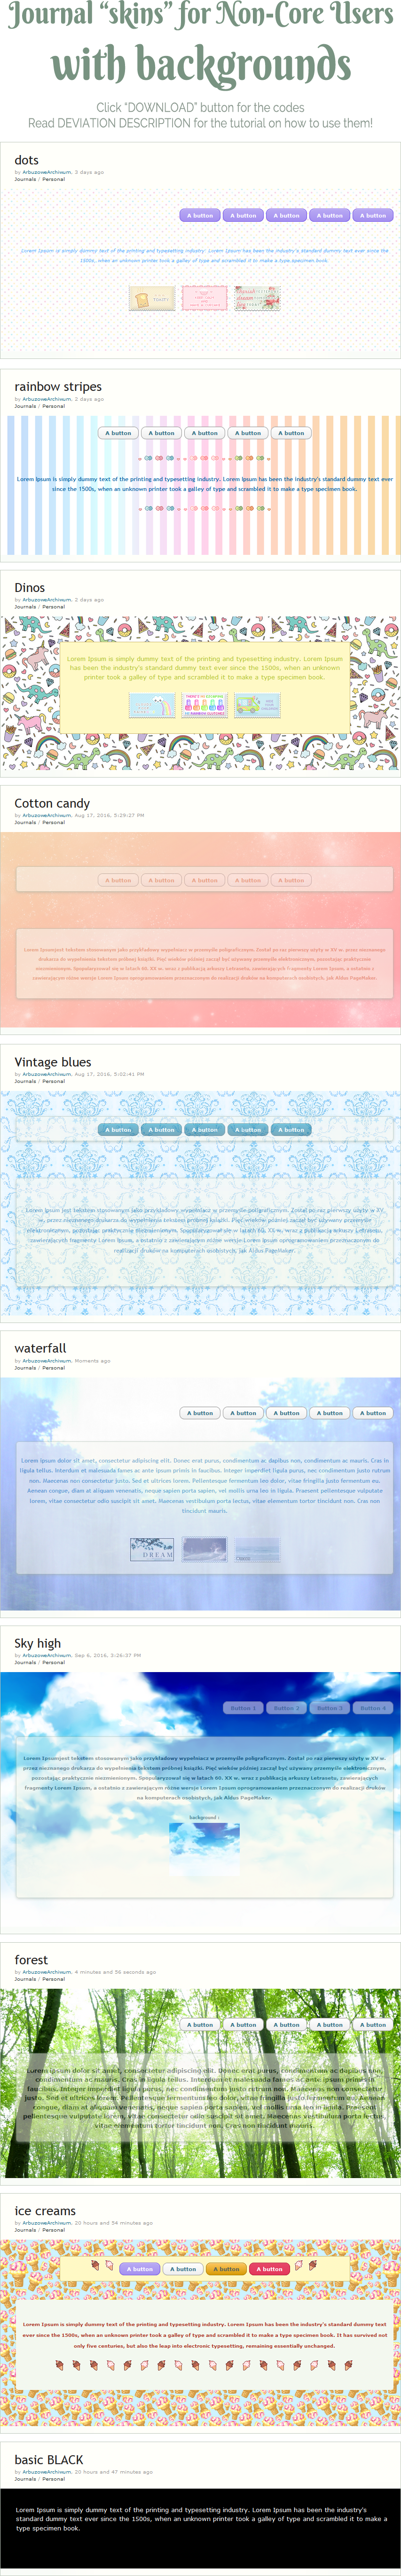 Journal 'skins' for NON-CORE users with background by UszatyArbuz